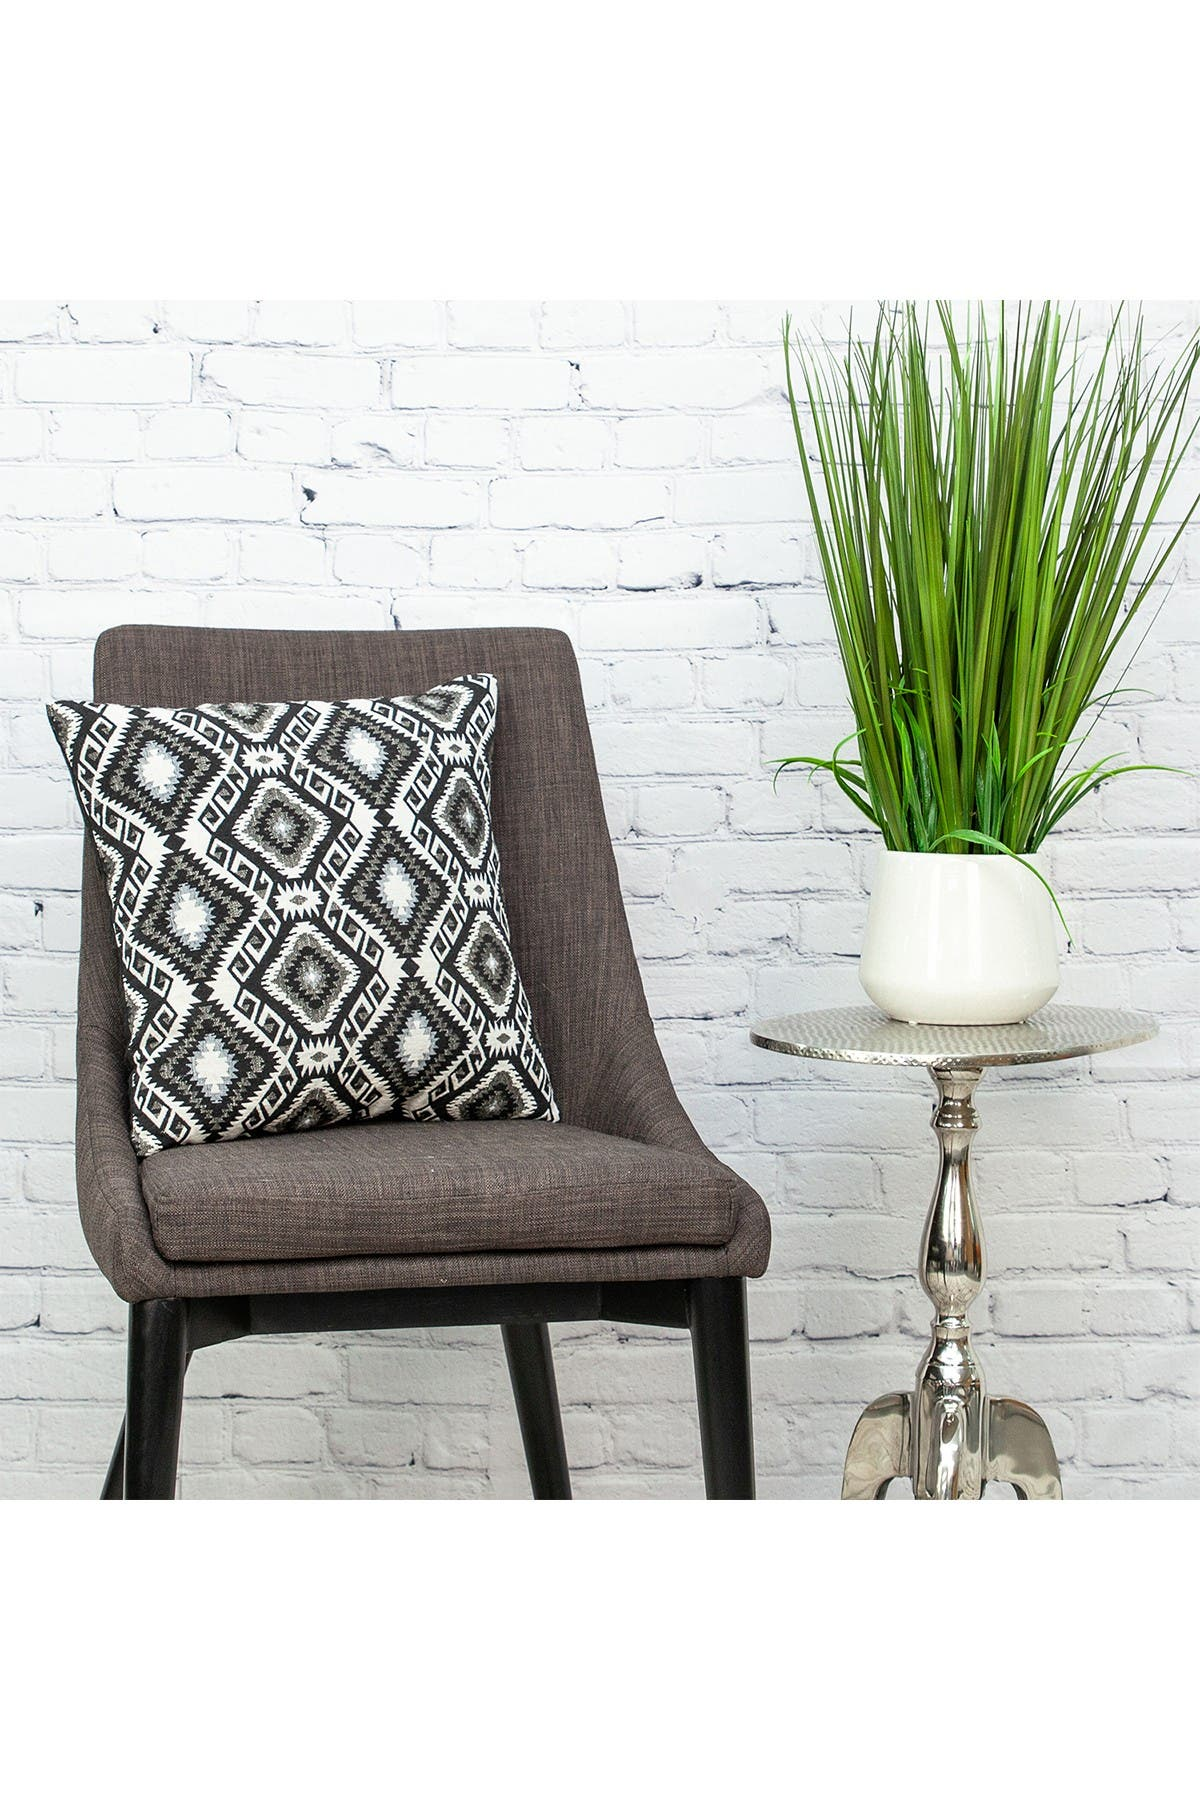 Image of Parkland Collection Habib Transitional Black Throw Pillow